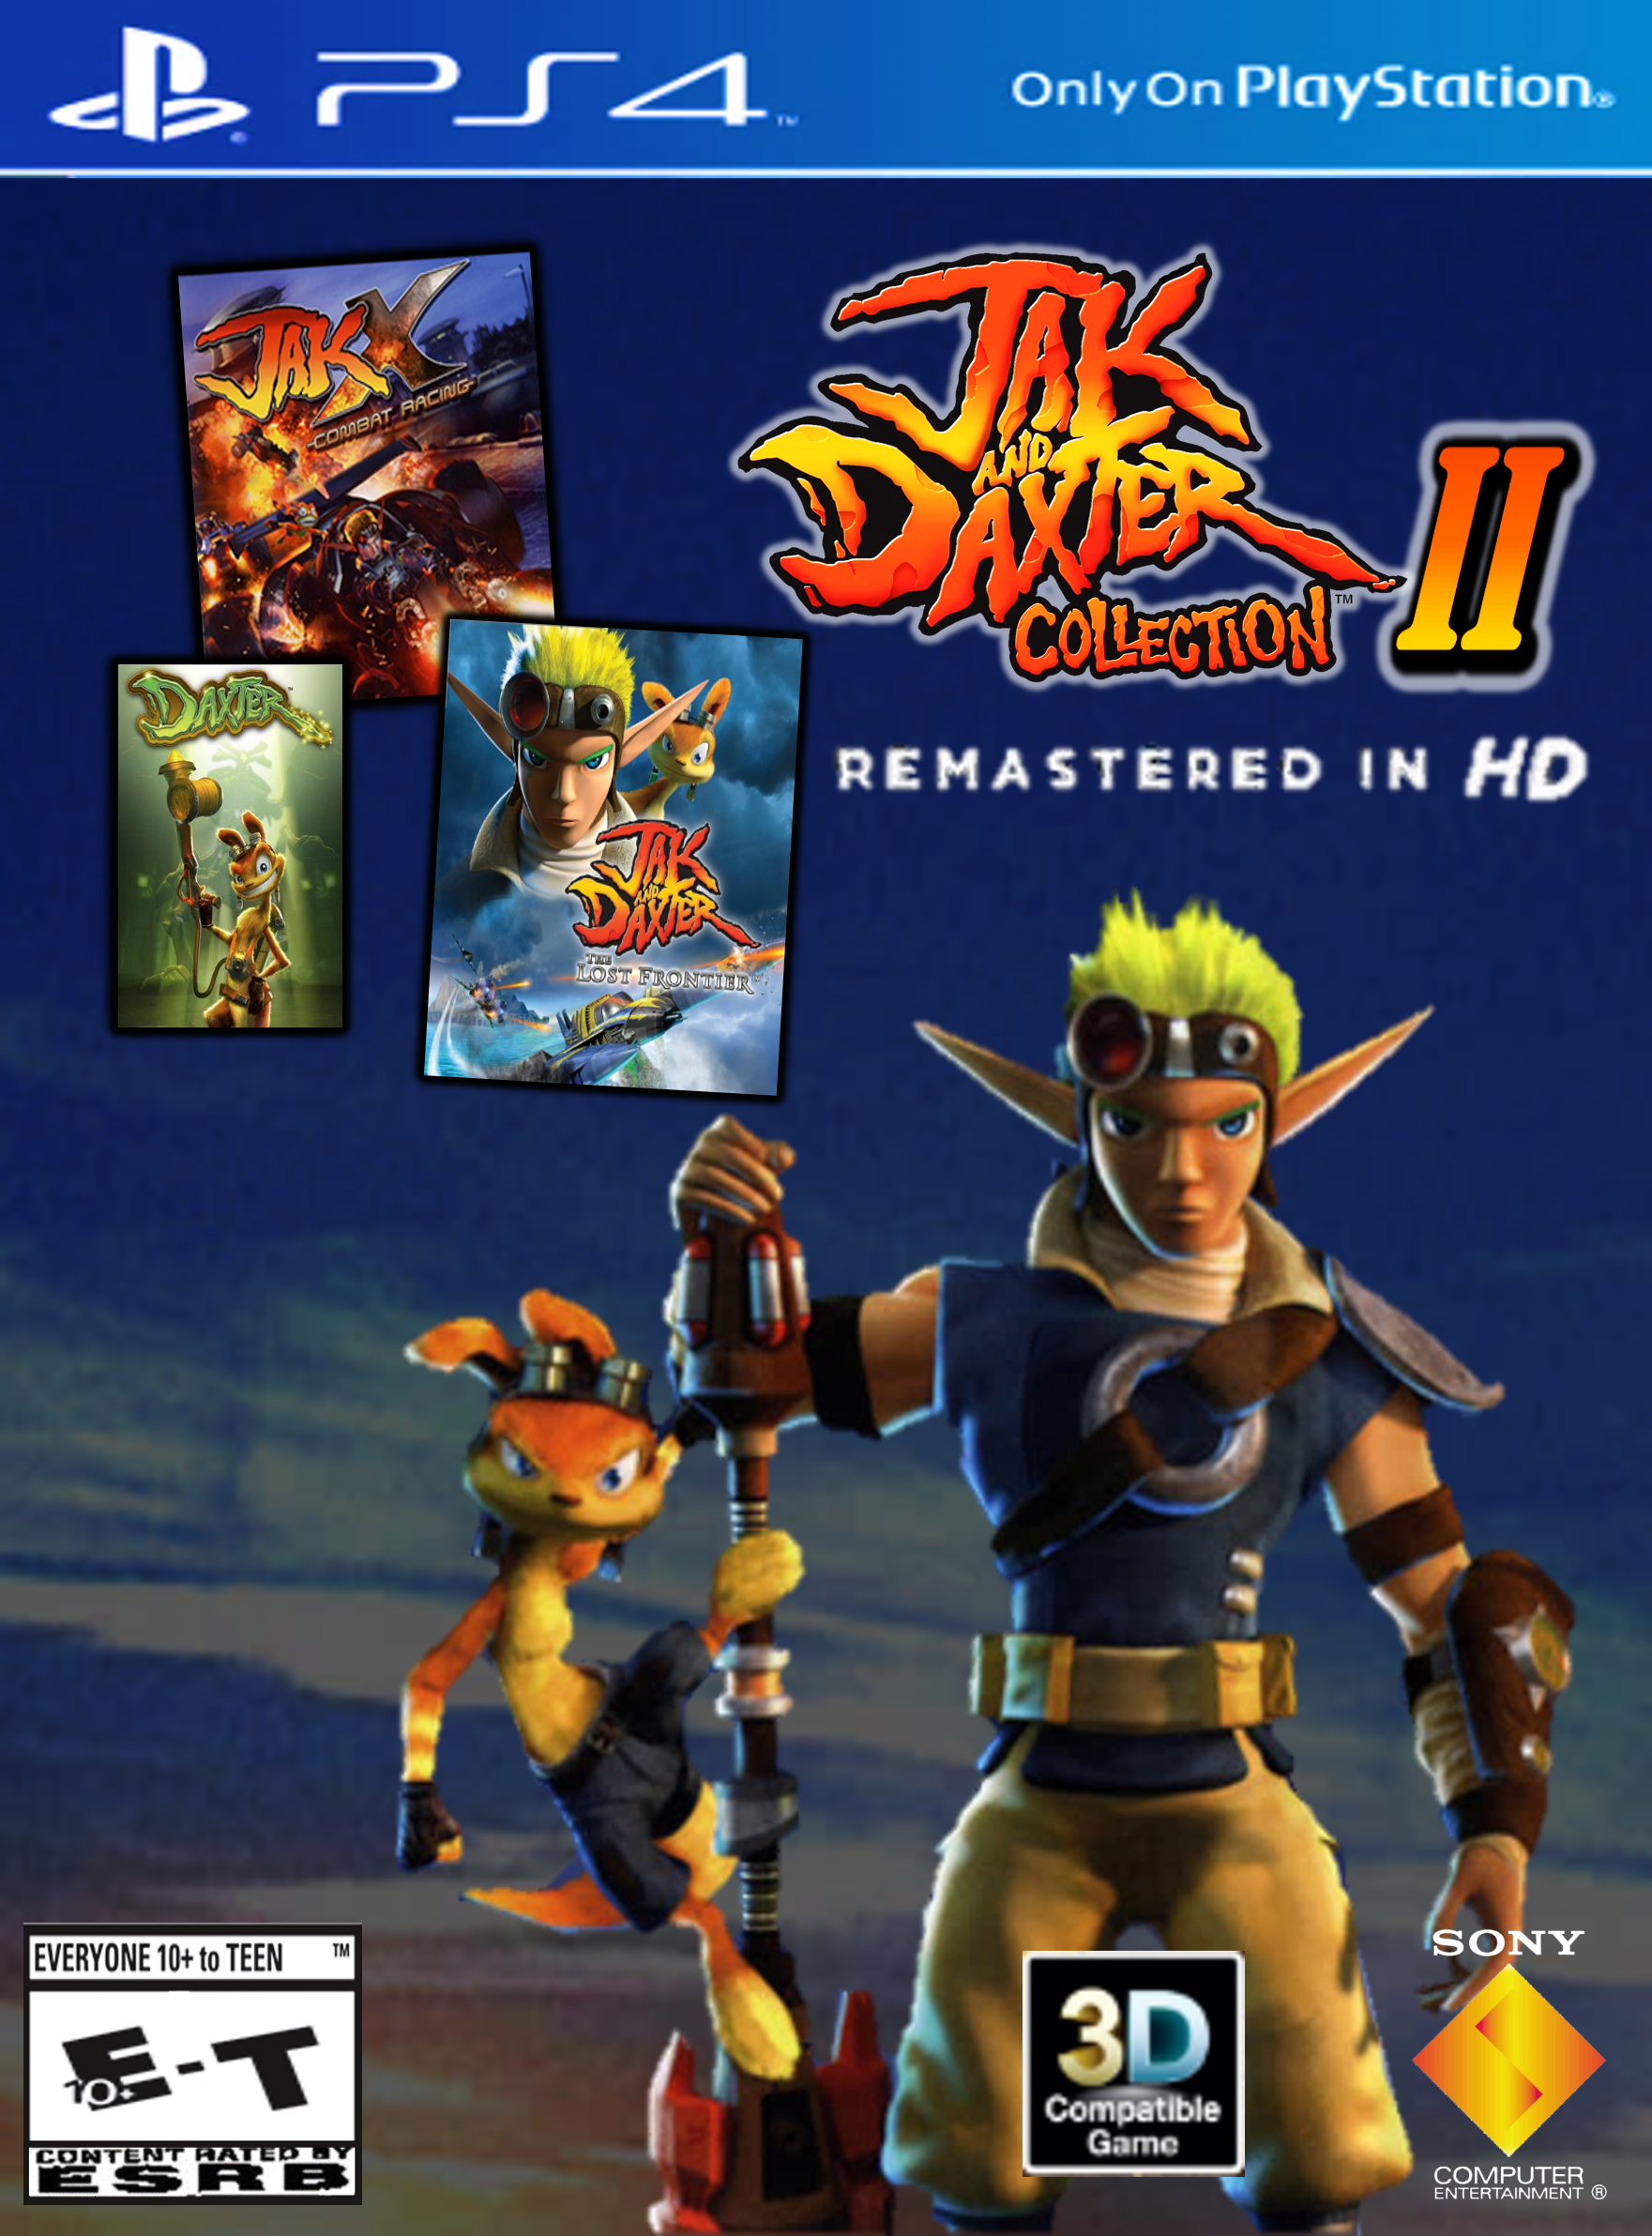 Jak And Daxter Collection Ii Ps4 Remastered Hd By 9029561 On